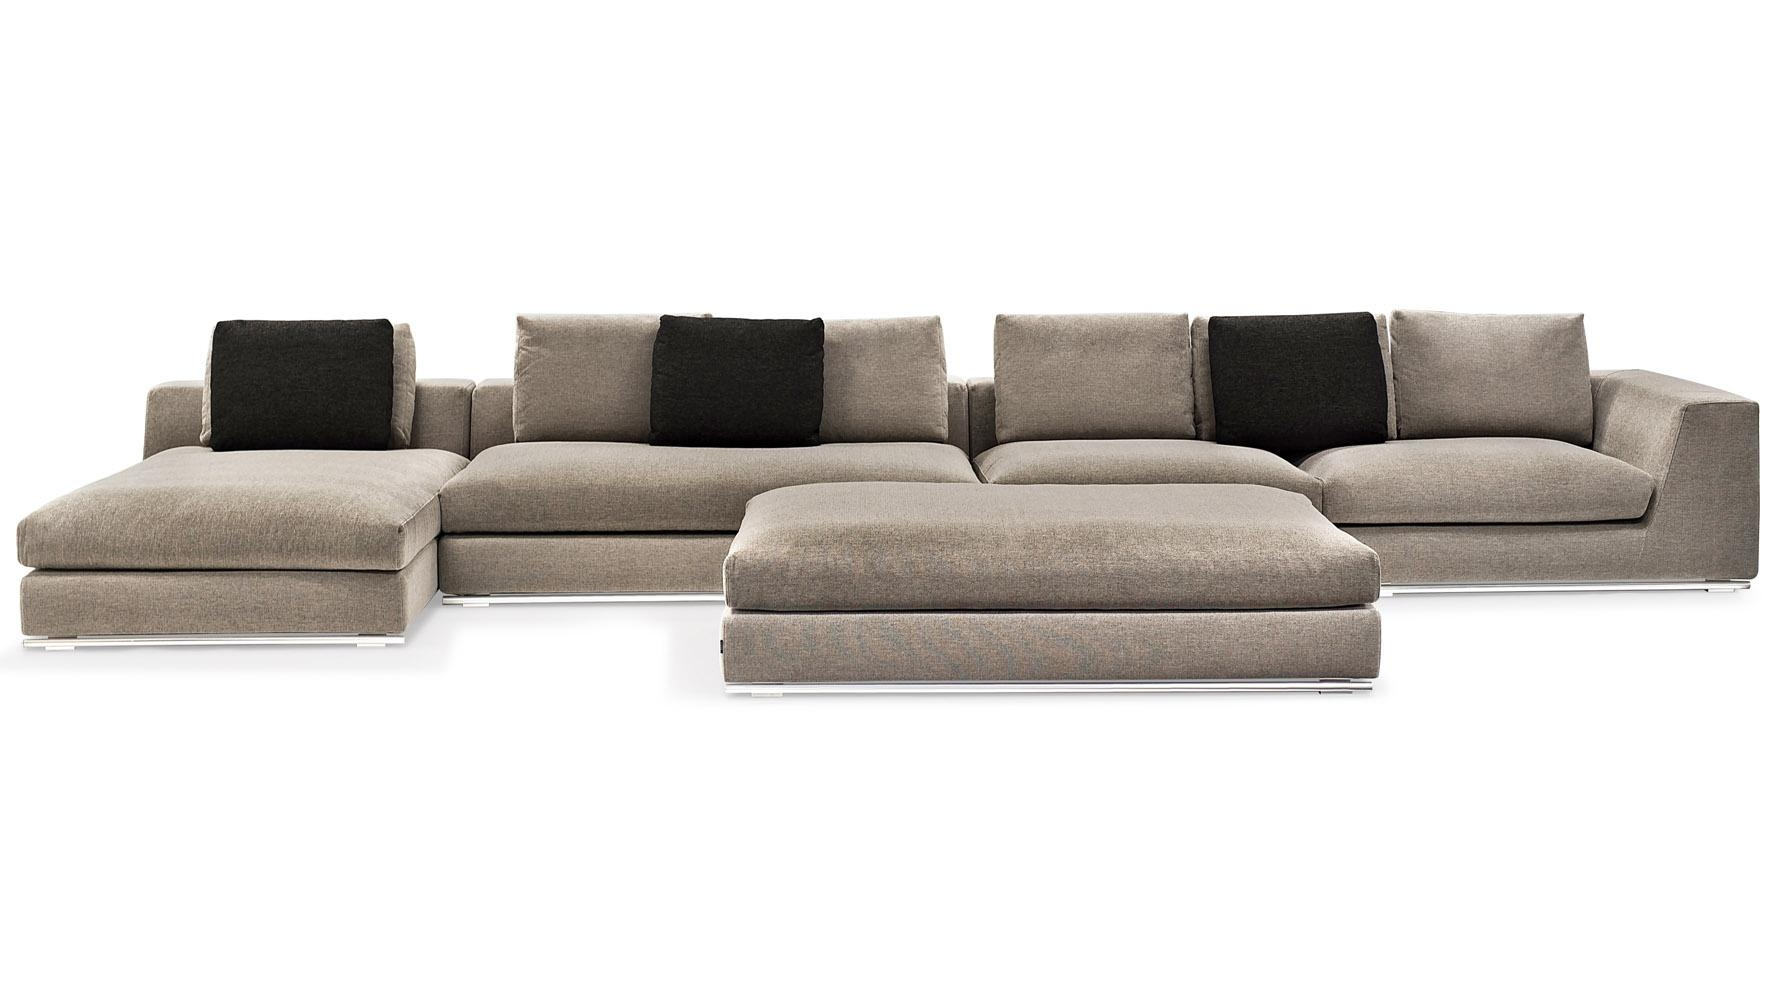 Comodo Sectional Sofa With Ottoman – Grey | Zuri Furniture Intended For Armless Sectional Sofas (View 13 of 15)